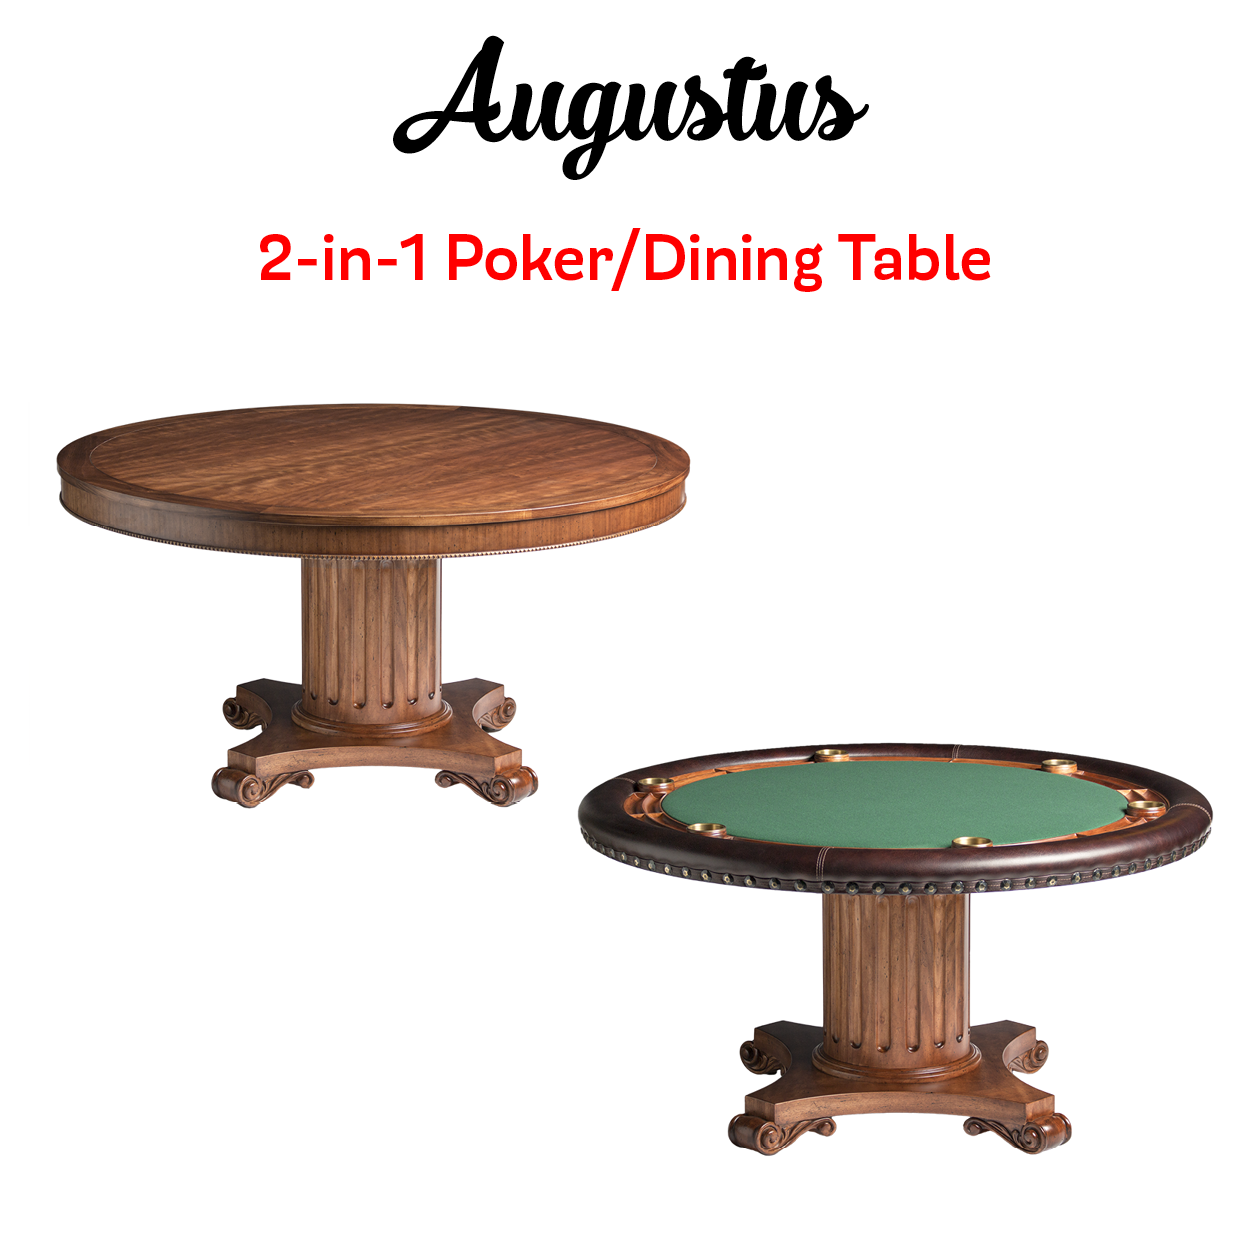 the darafeev augustus combination game table comes in a variety of rh pinterest com